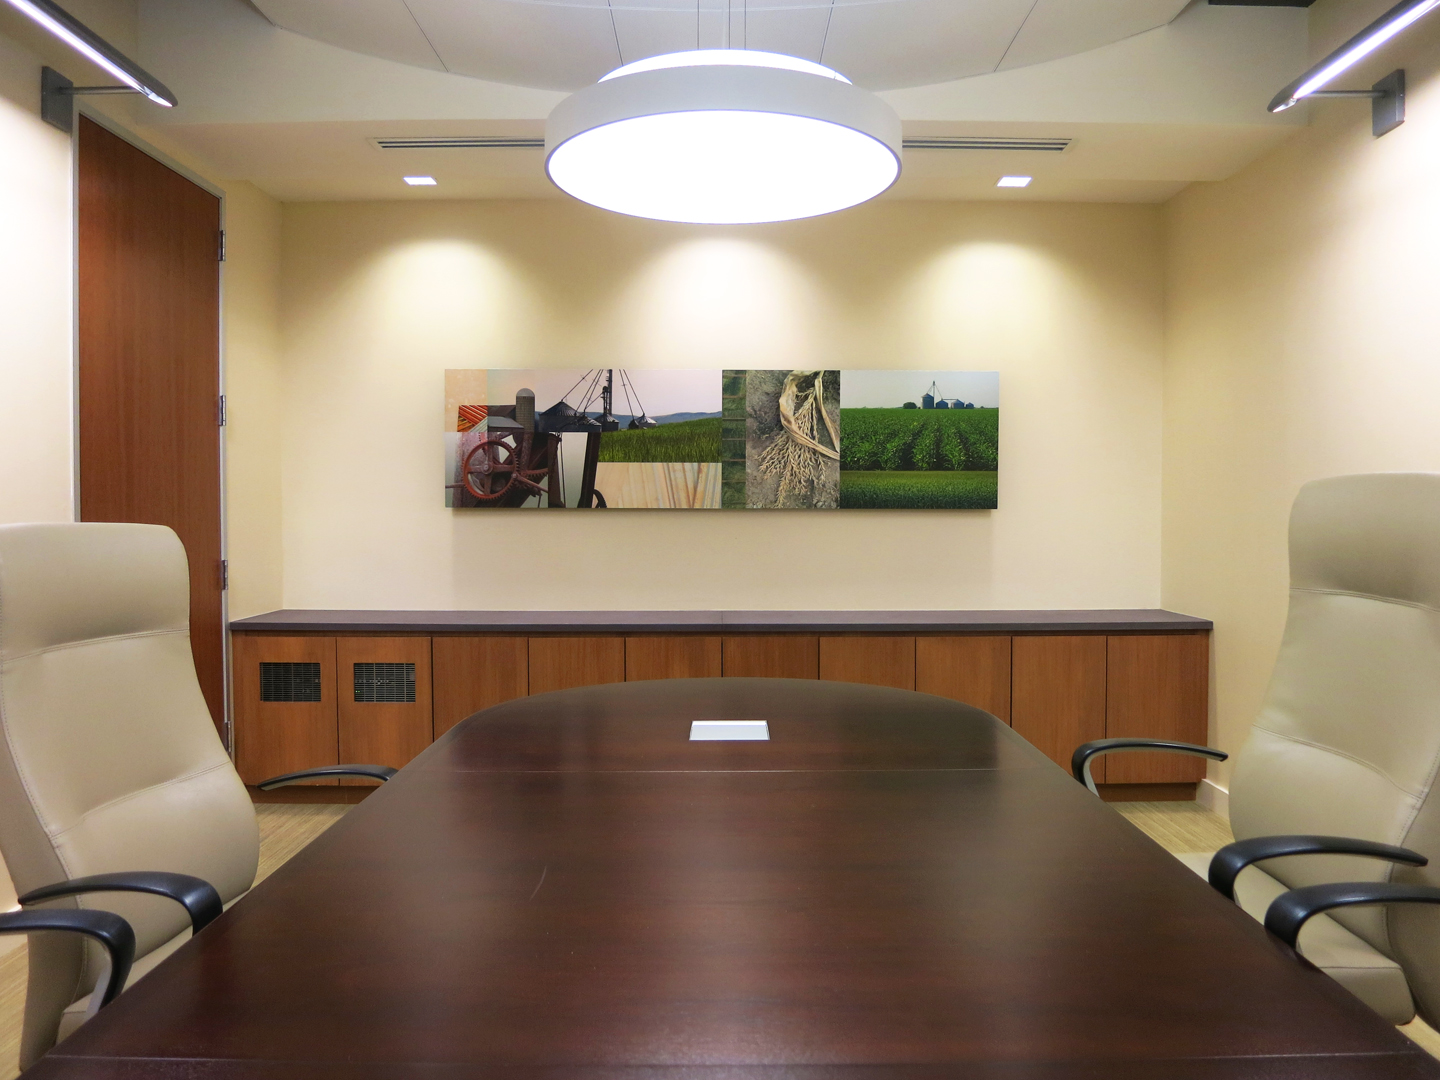 A Conference Room features a custom photo collage above the credenza.